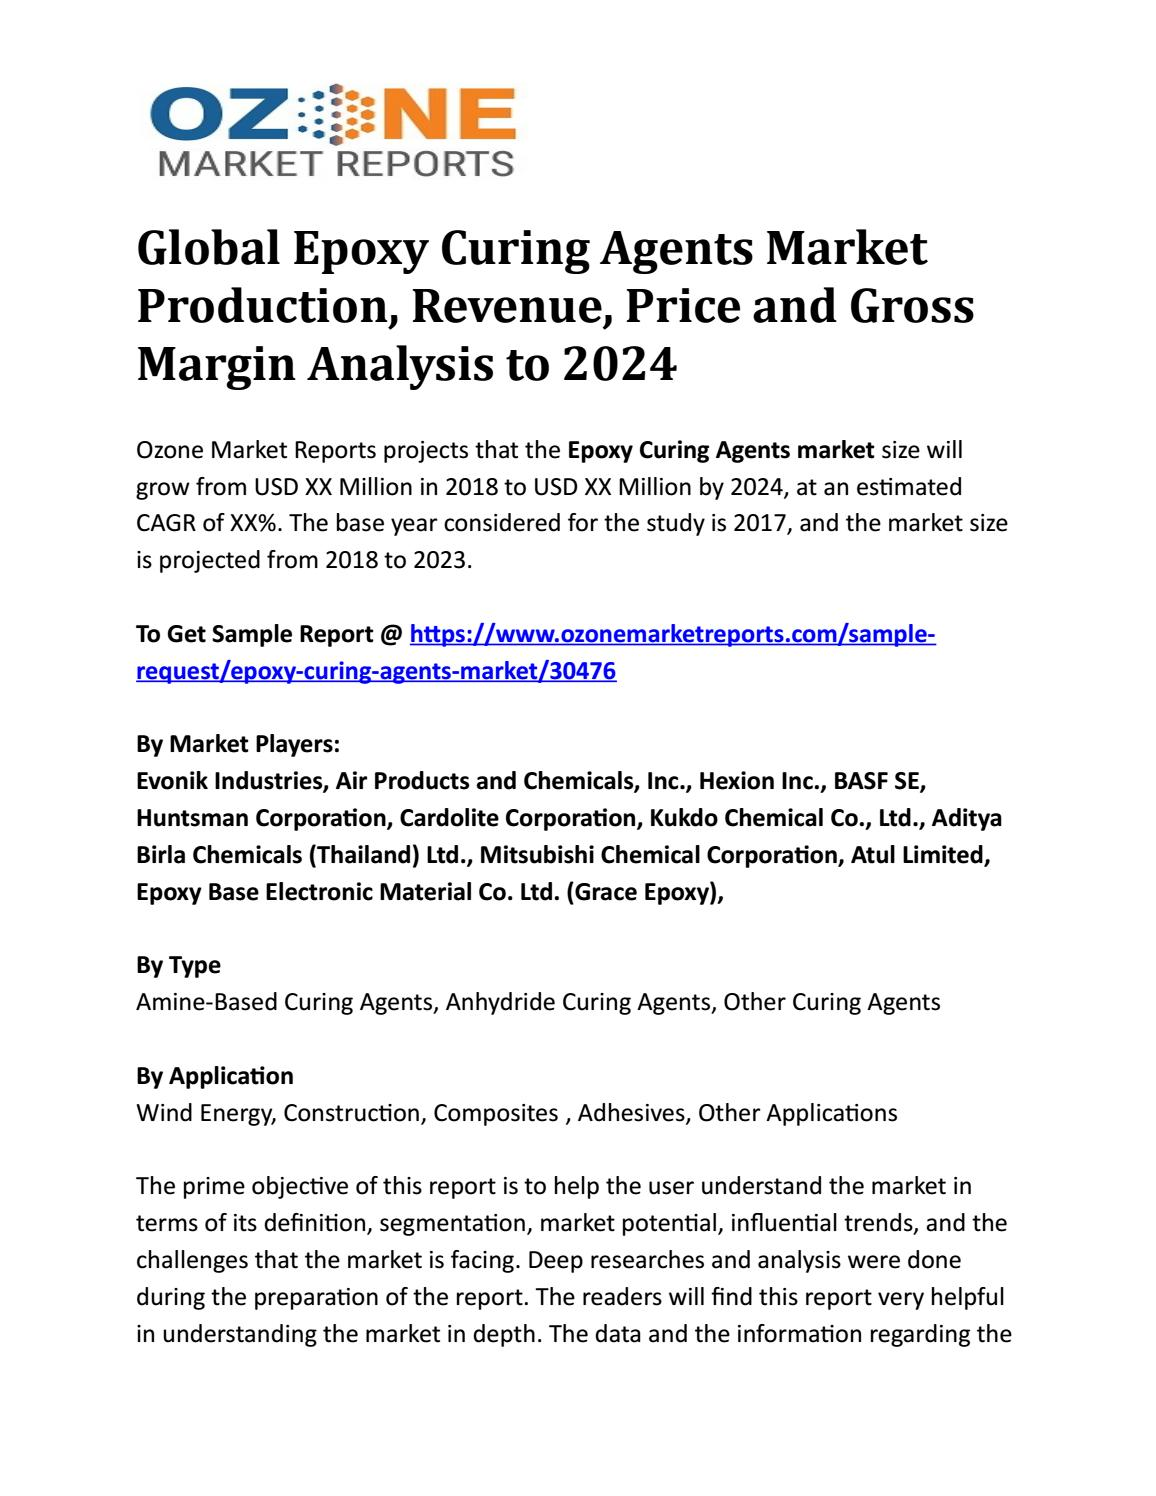 Global Epoxy Curing Agents Market Production, Revenue, Price